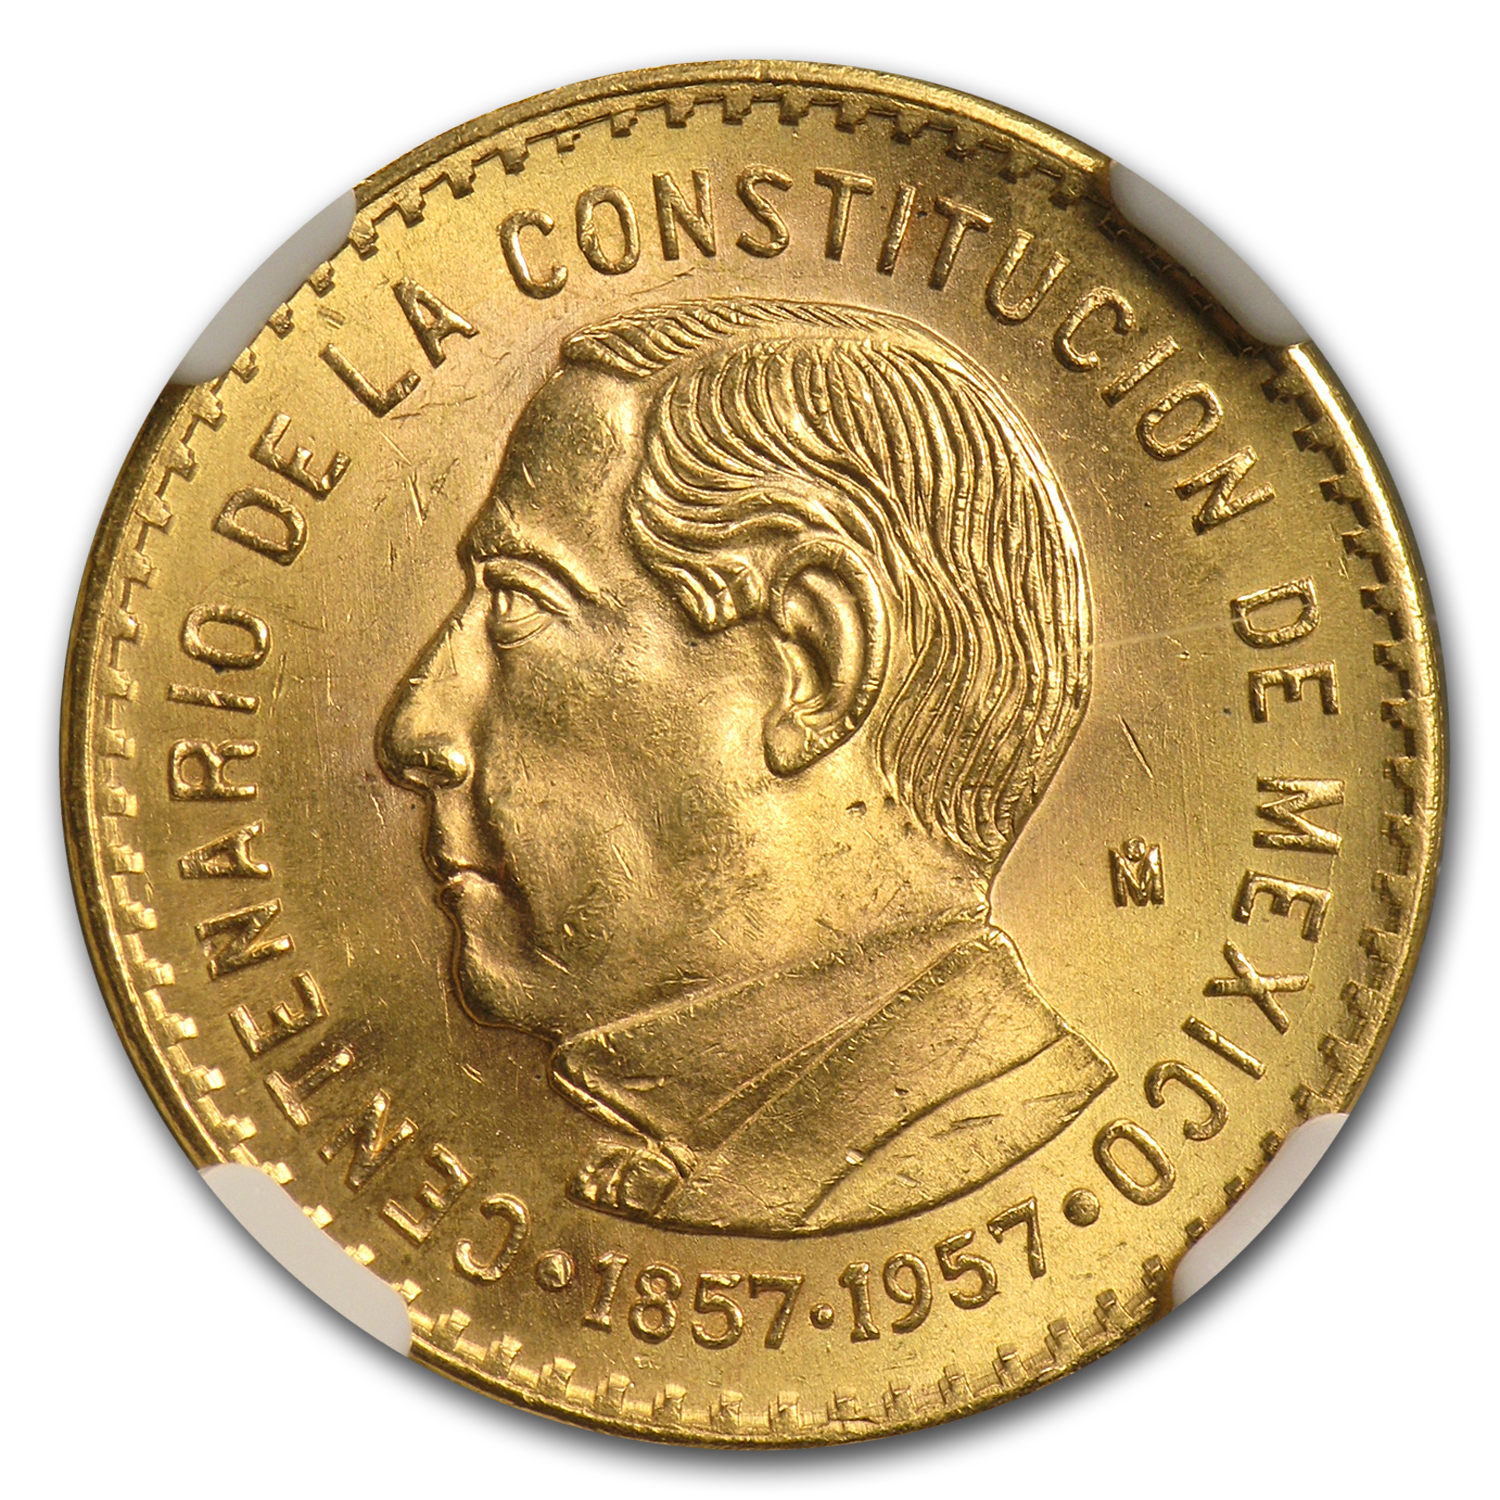 1957 Mexico Centennial of the Constitution Gold MS-64 NGC